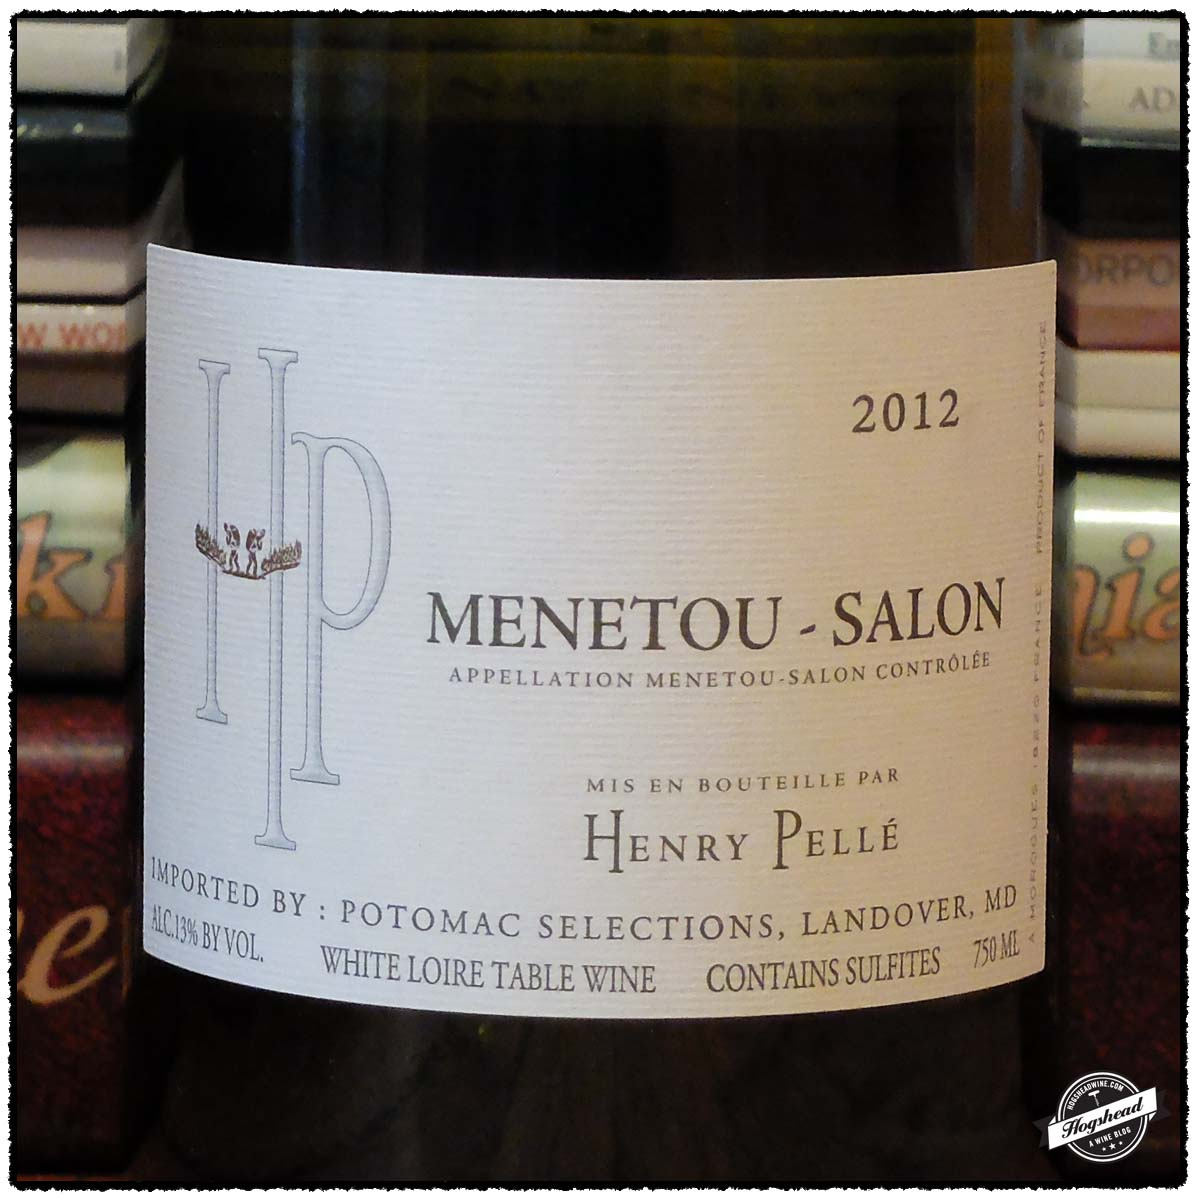 Excellent wines of the 2012 vintage from breton pelle for Menetou salon 2012